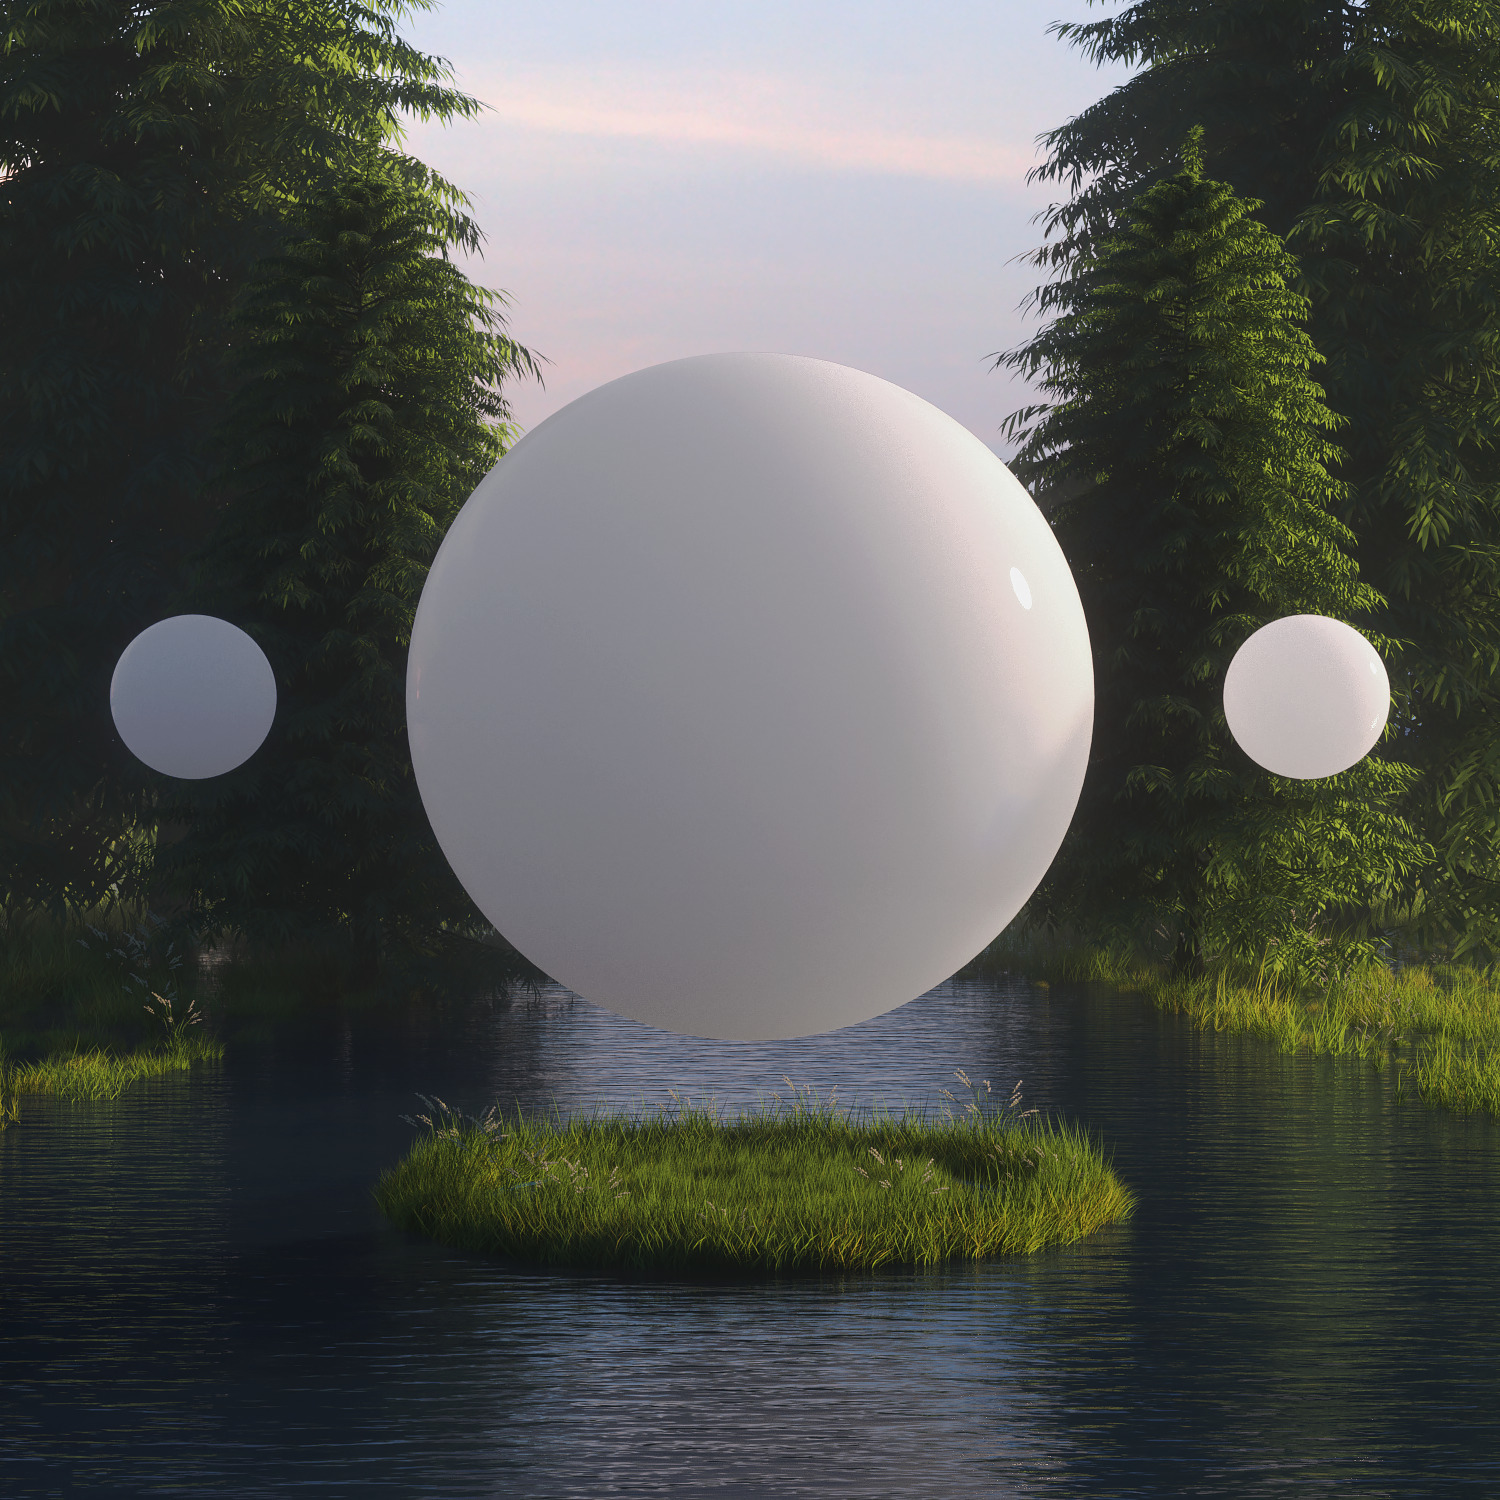 ASCEND - Cinema4D, C4D, Art, Render - mindofimpact | ello